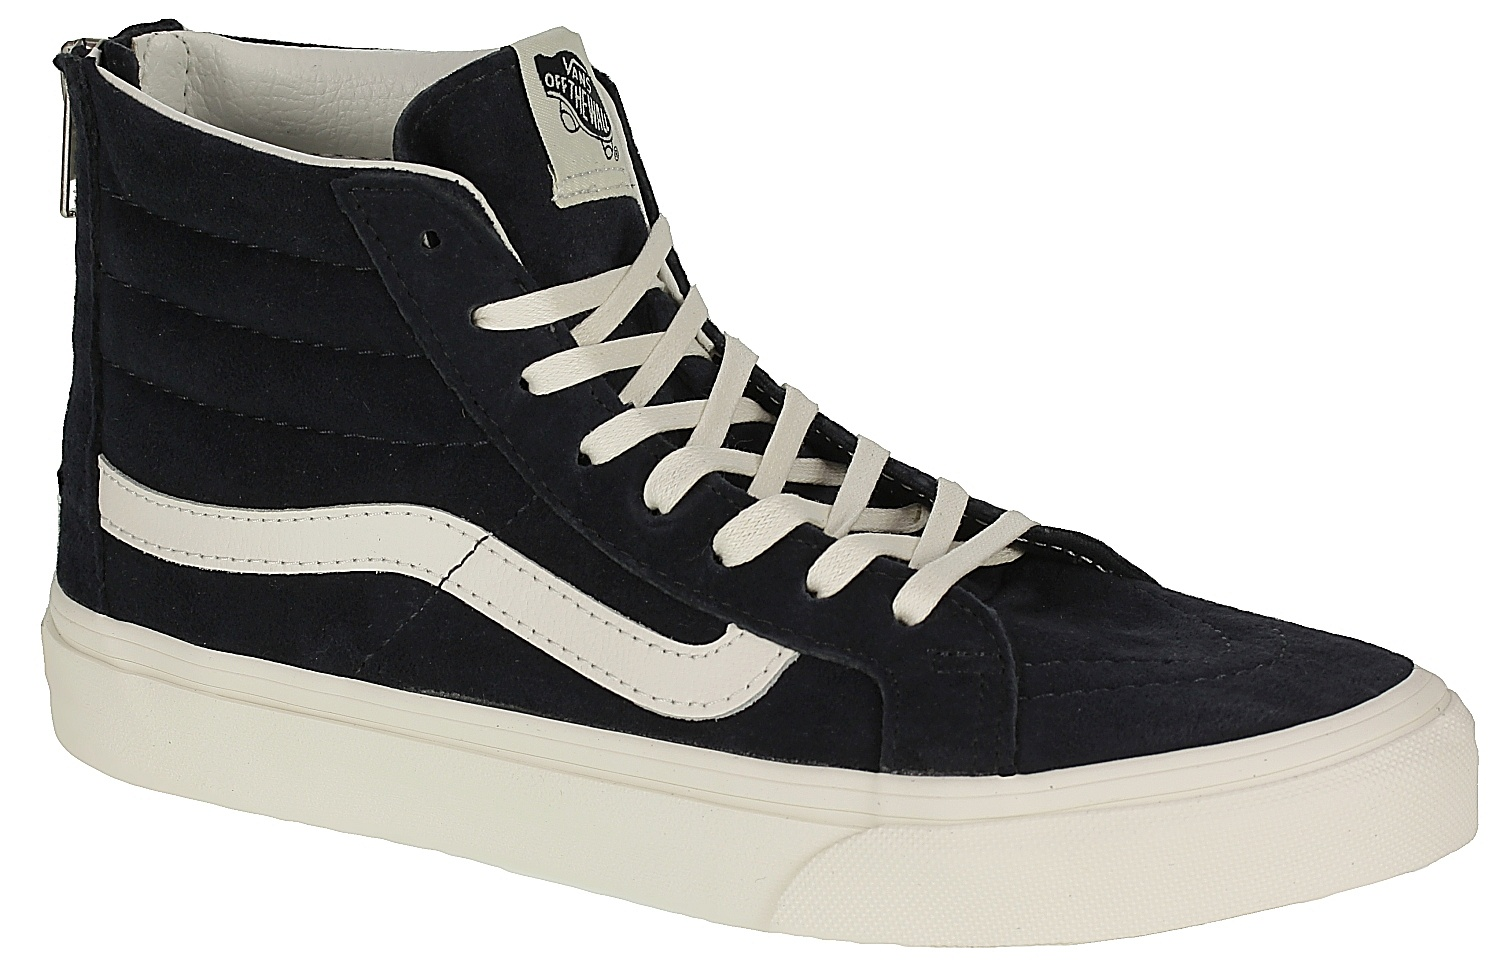 6c8c94d3a6 Vans Sk8-Hi Slim Zip Shoes - Scotchgard Blue Graphite - Snowboard shop